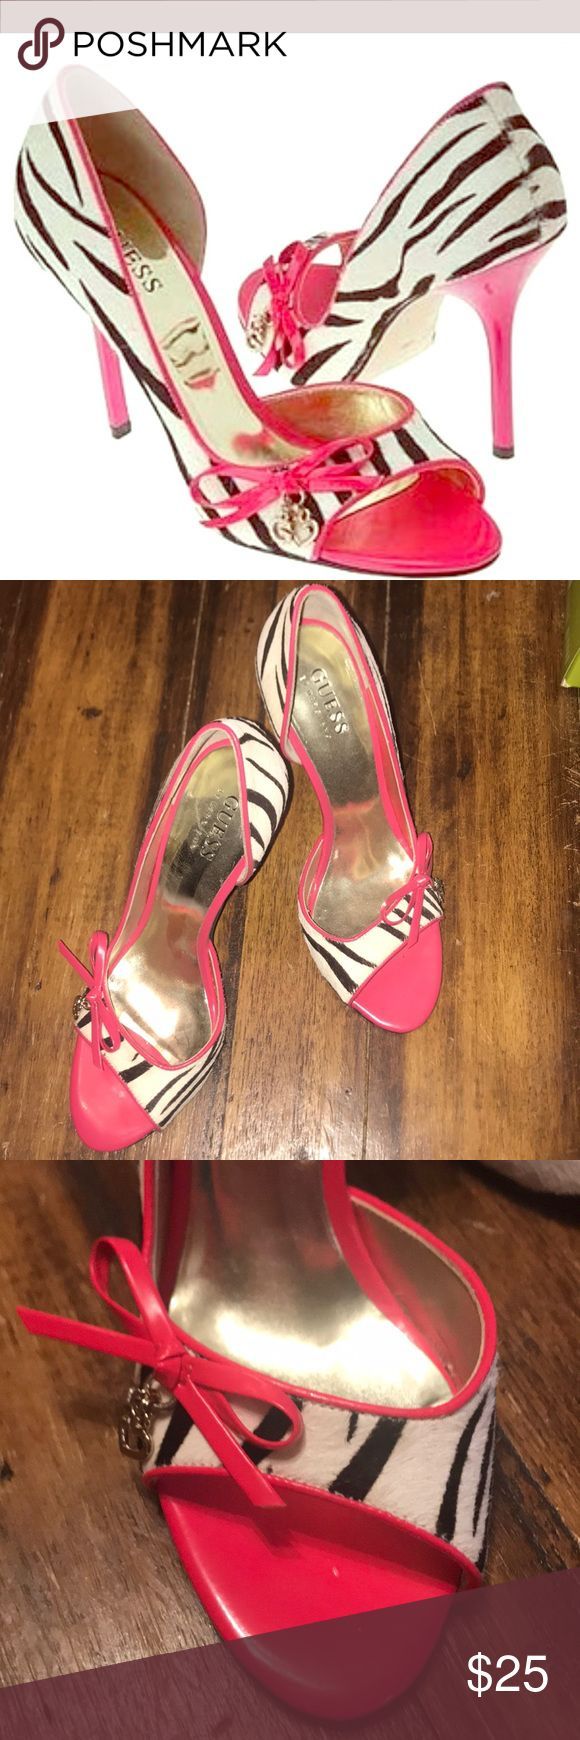 Hot pink and Zebra heels Size 6.5 Guess heels. Zebra pint and hot pink. Bottoms are scuffed from walking in them. I do have the original box. Guess Shoes Heels